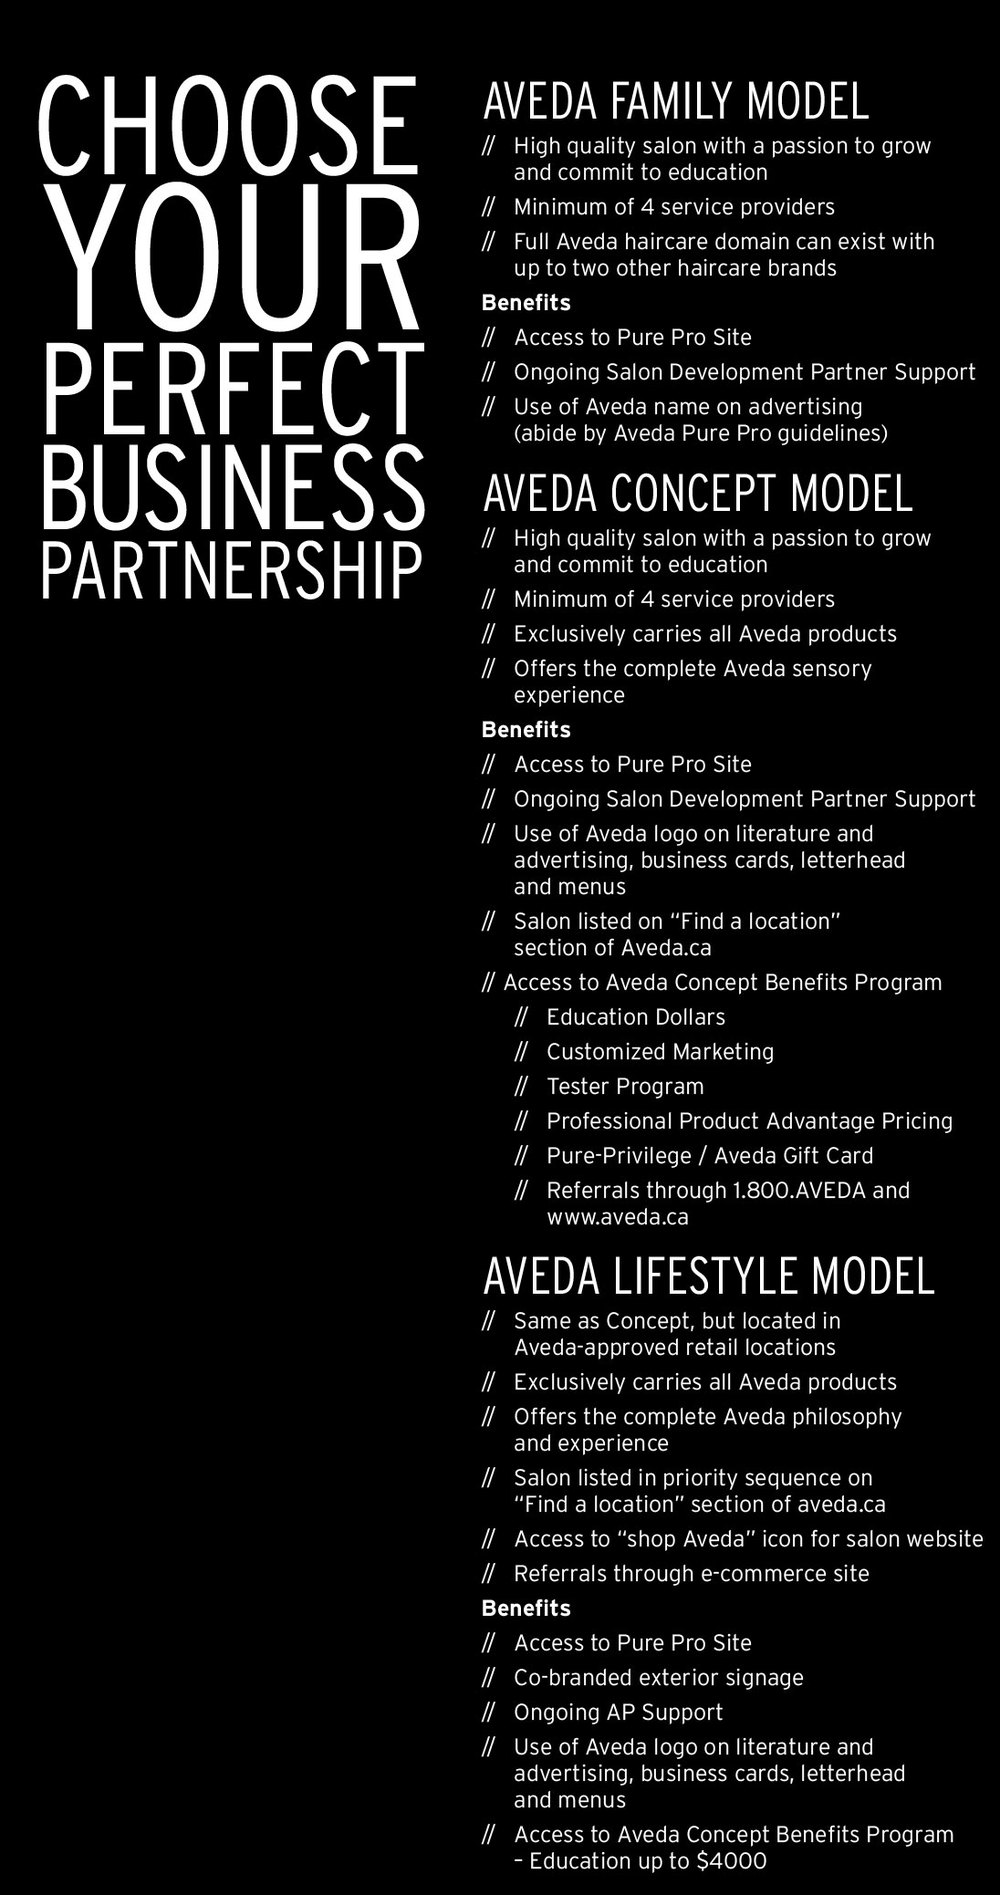 AVEDA-NEW-BUSINESS---WHY_09.jpg